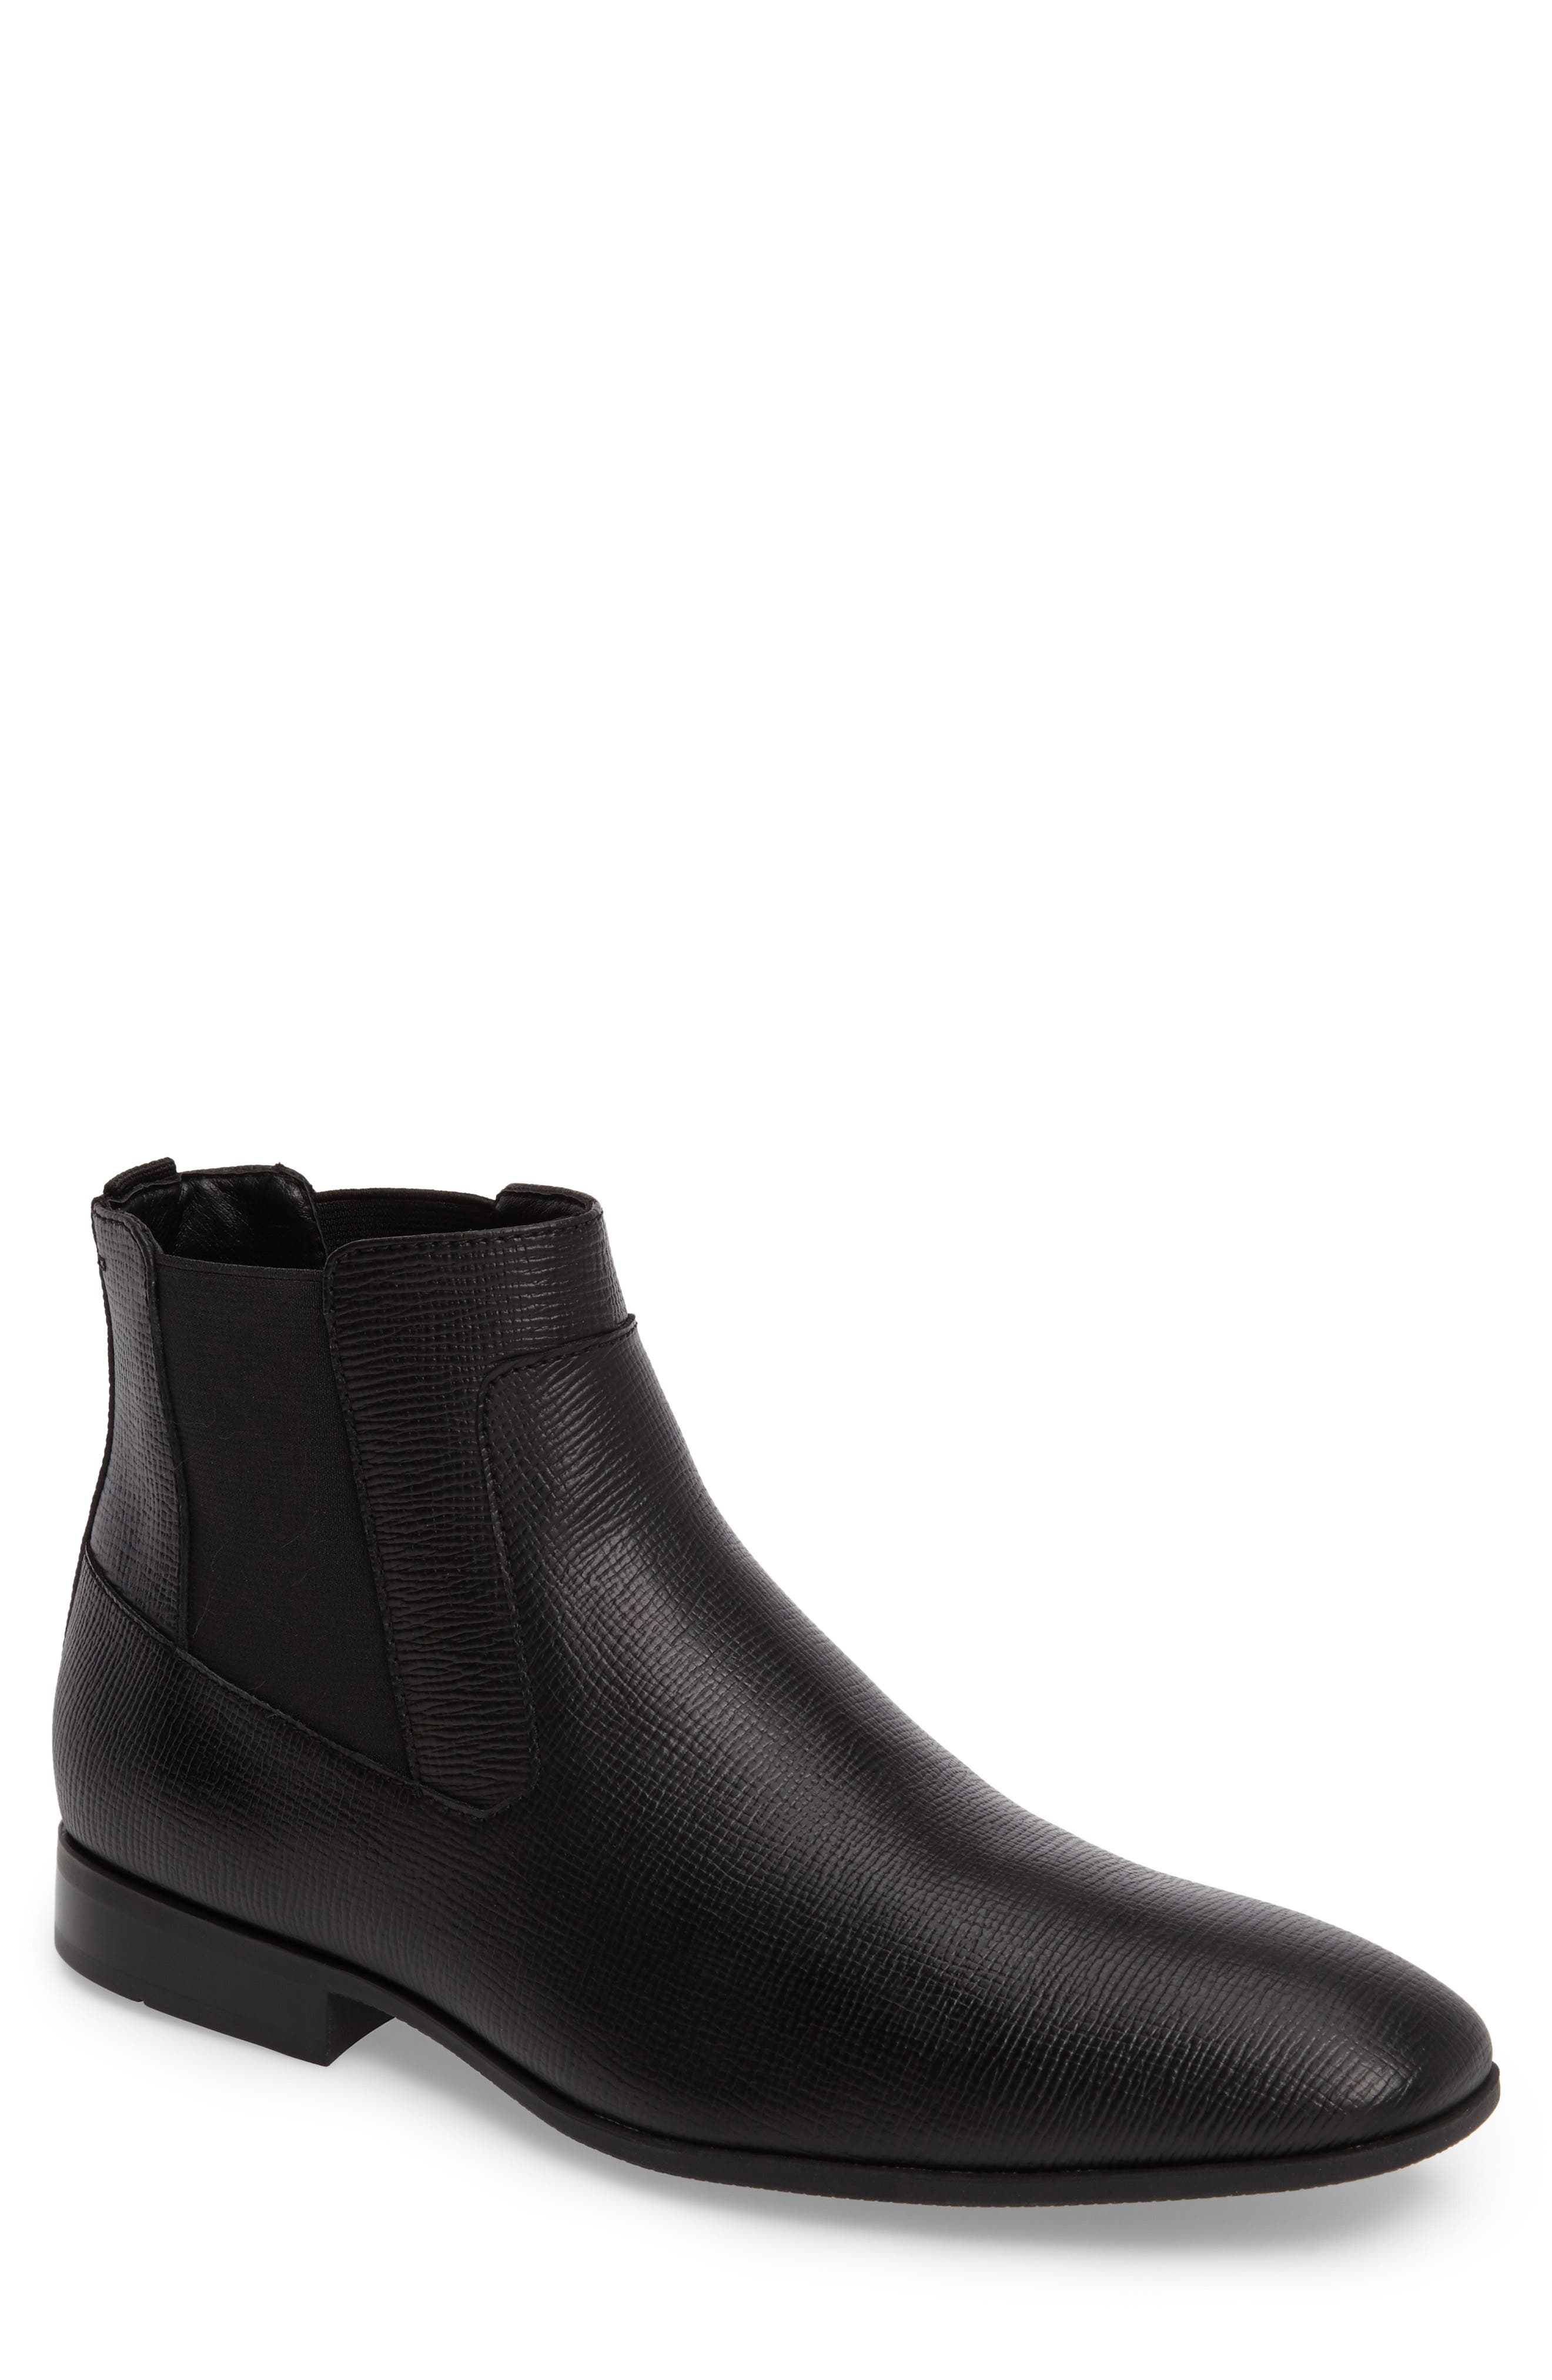 Christoff Chelsea Boot,                         Main,                         color, 001